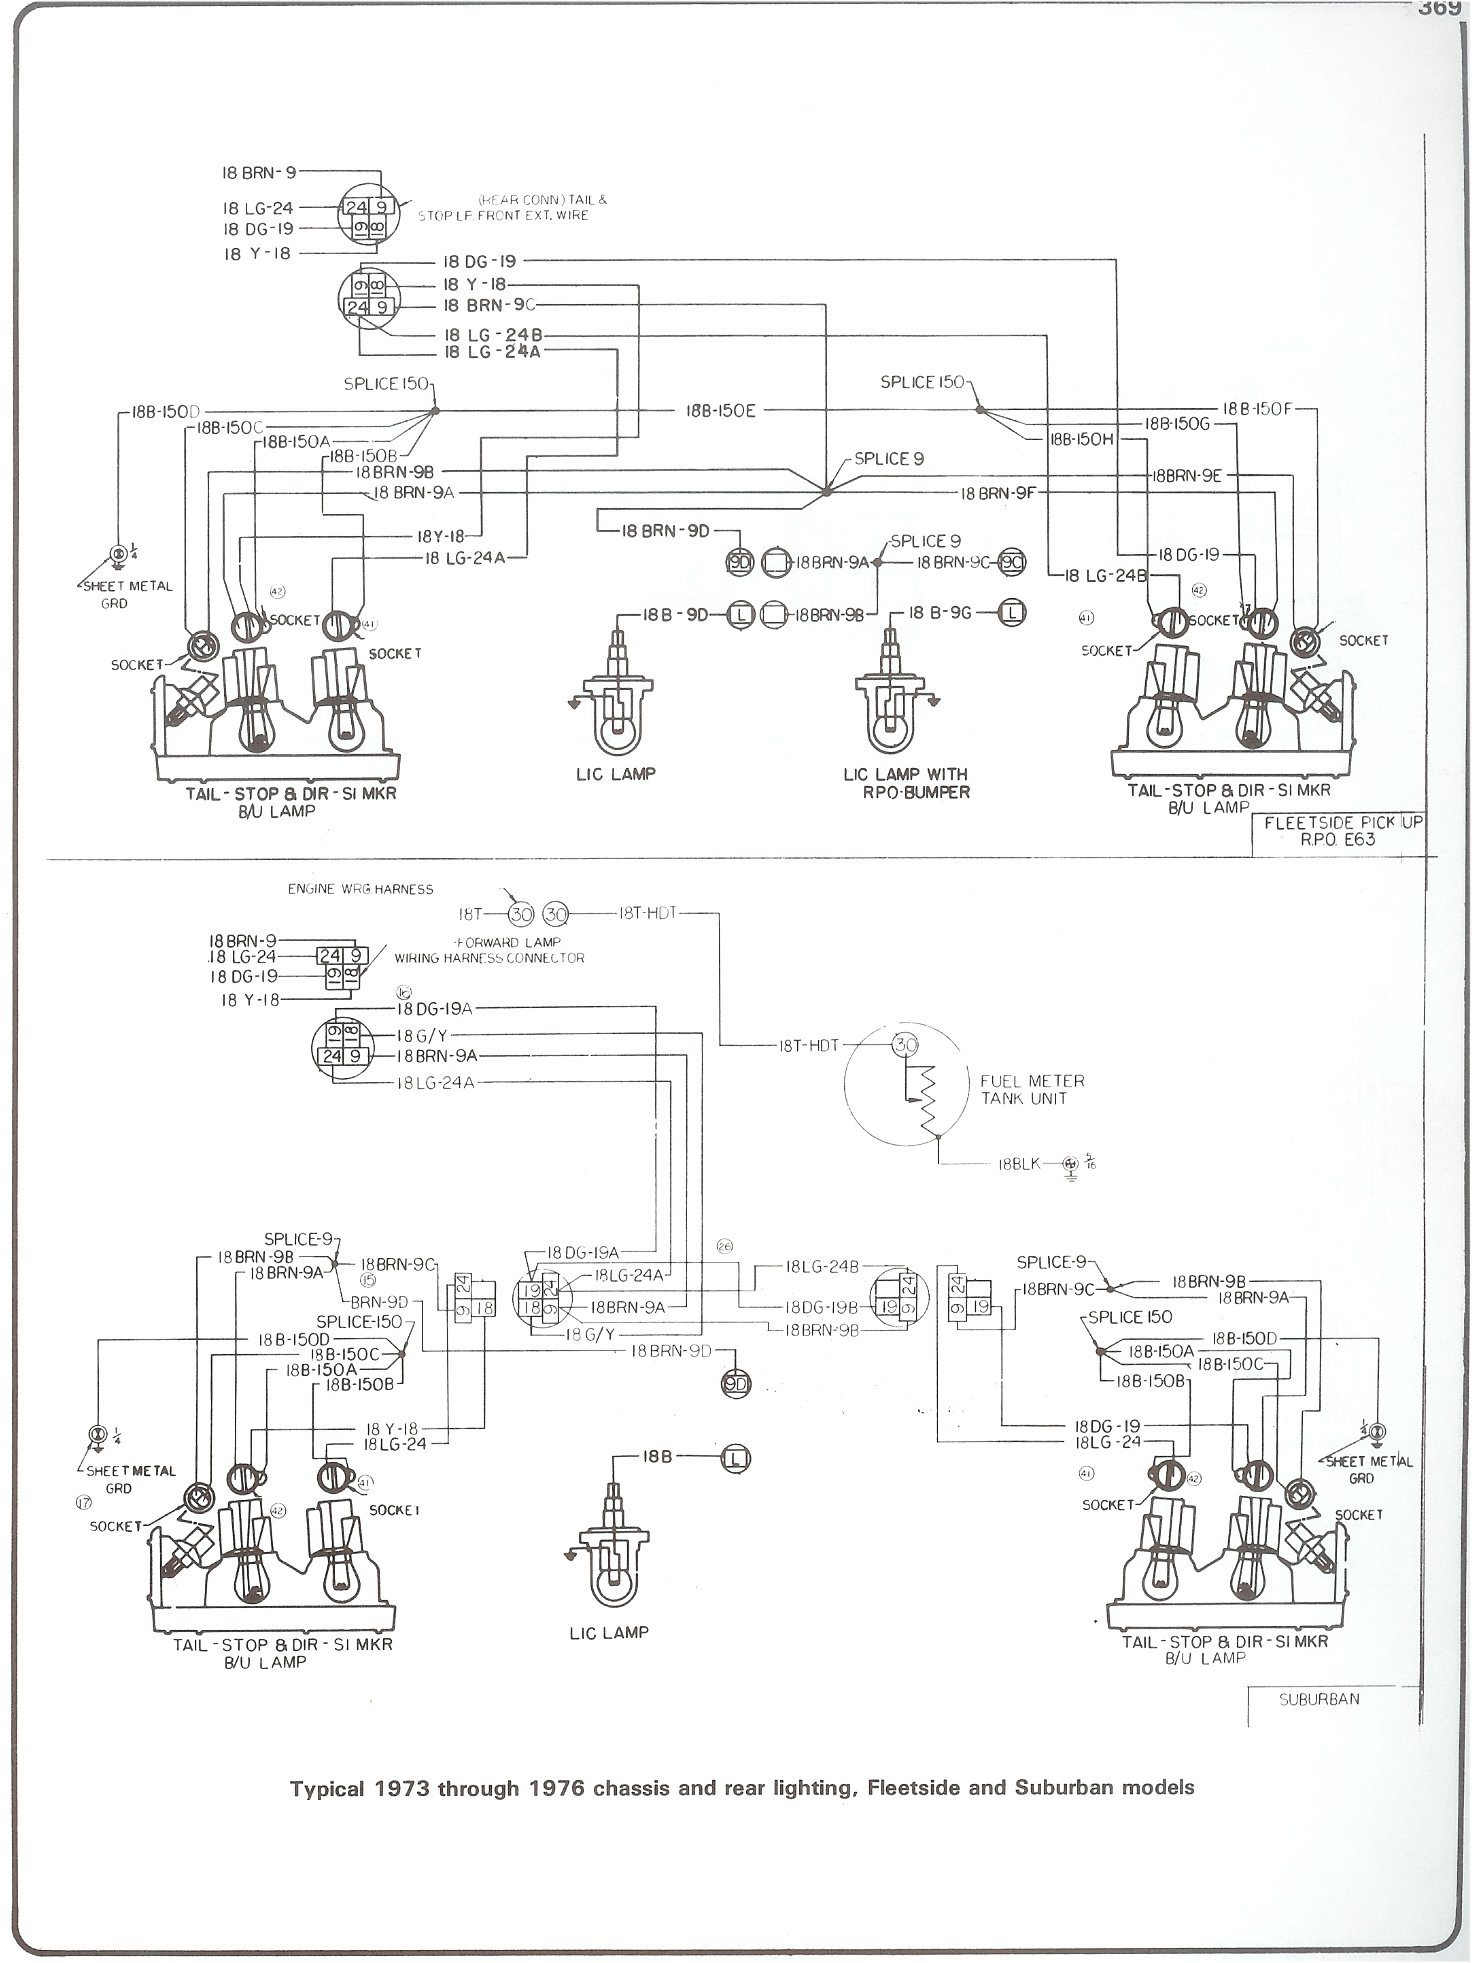 77 gmc wiring diagram 73 87 chevy wiring diagrams site | wiring library 77 ford wiring diagram